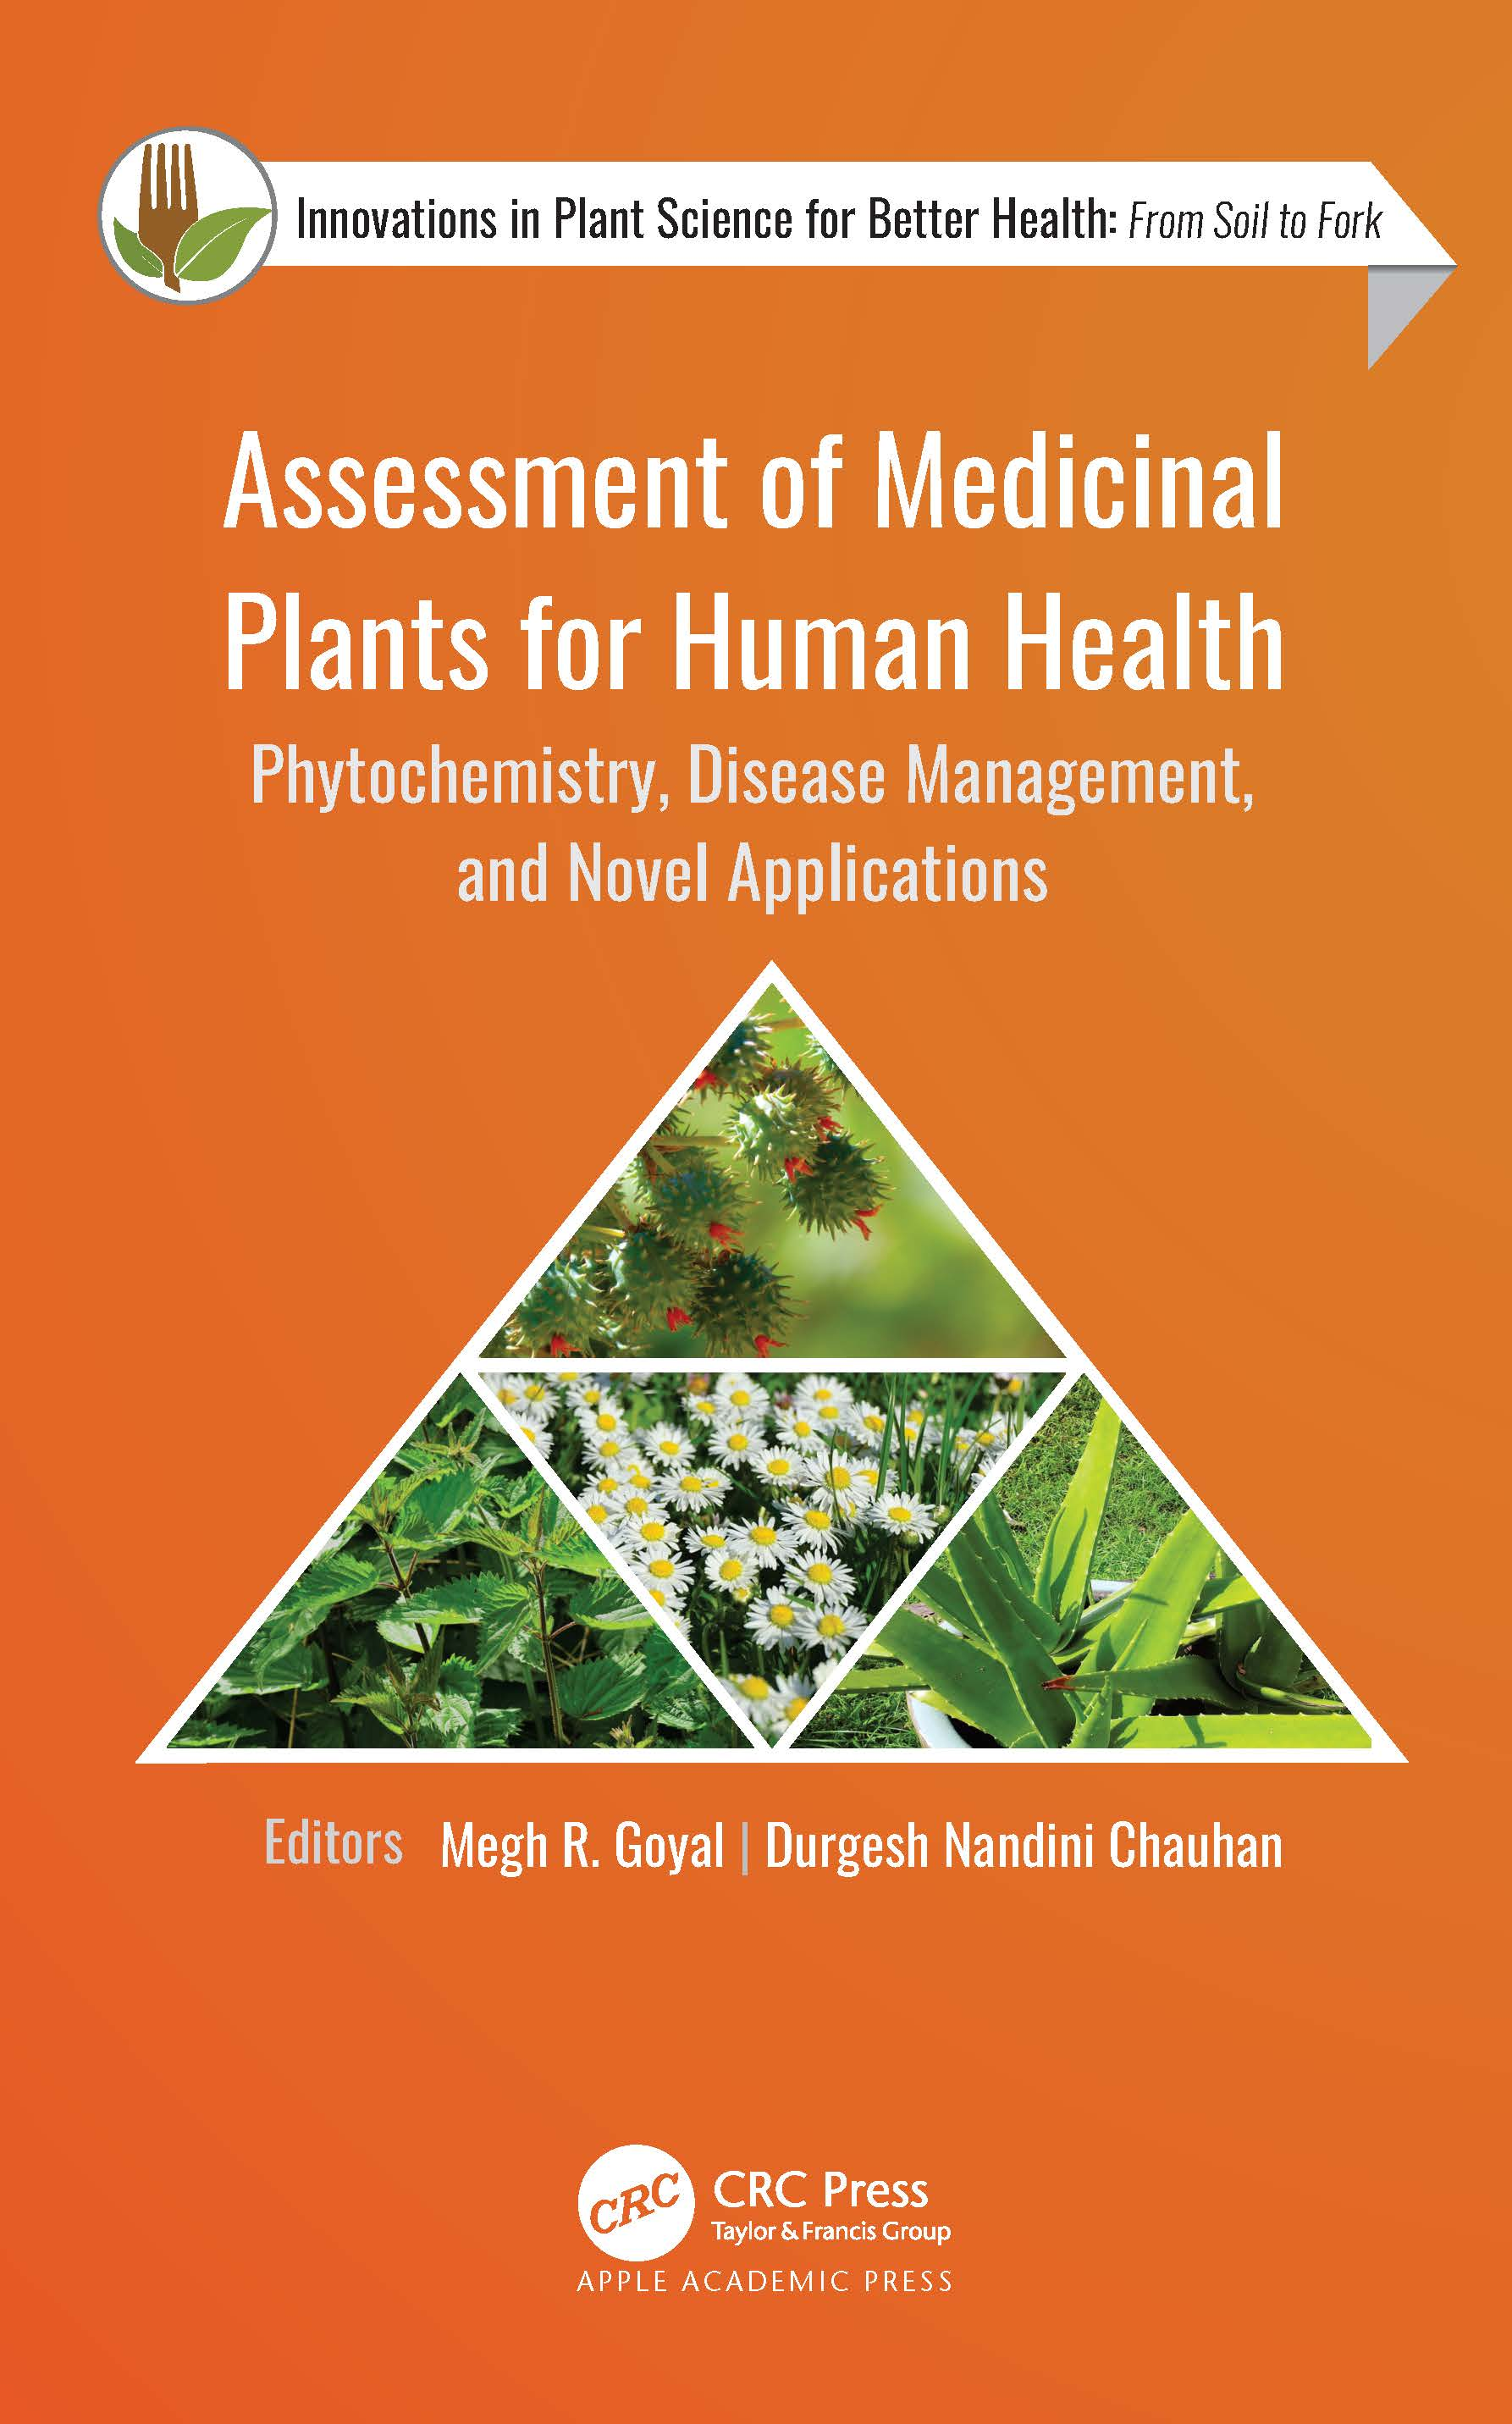 Assessment of Medicinal Plants for Human Health: Phytochemistry, Disease Management, and Novel Applications book cover